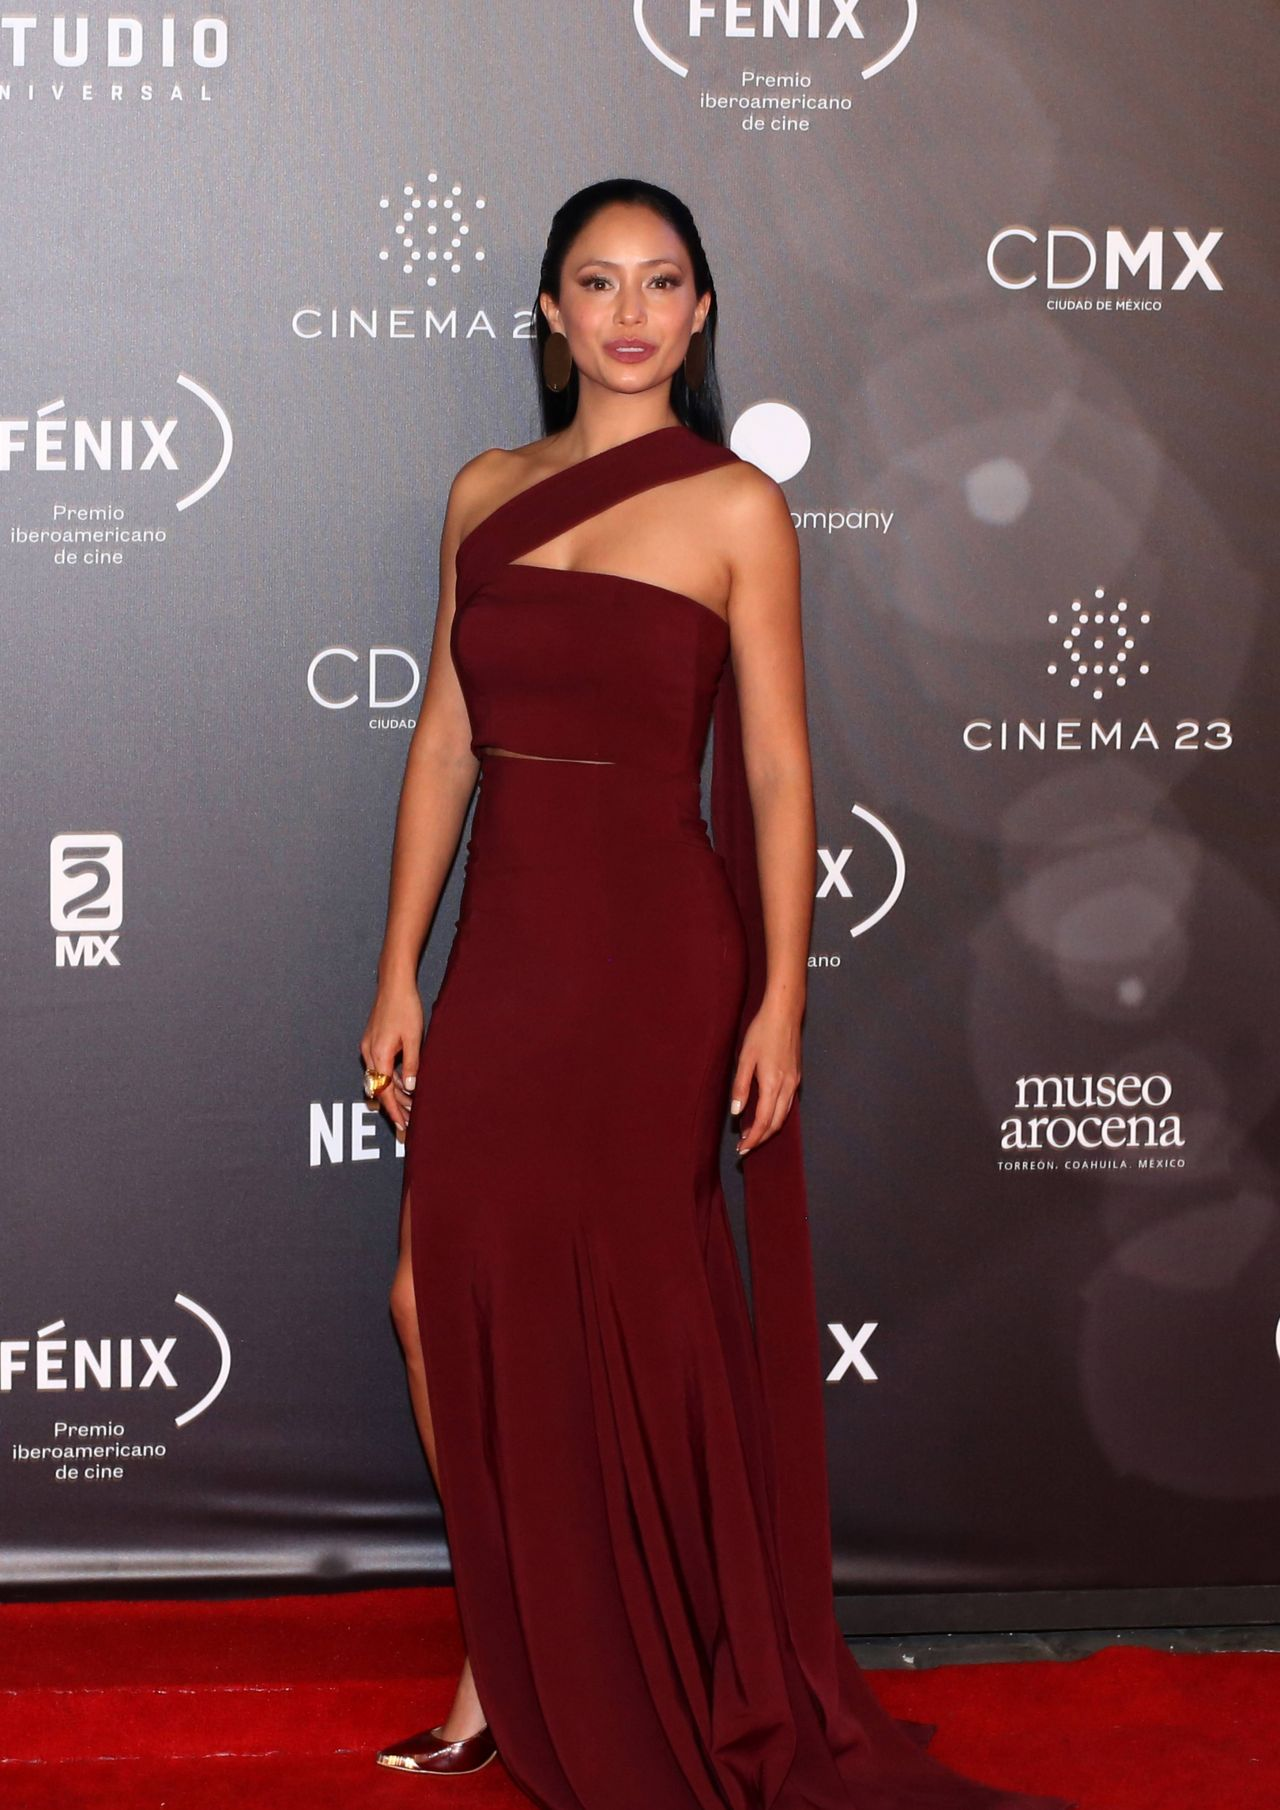 Maya Zapata Fenix Film Awards 2017 In Mexico City